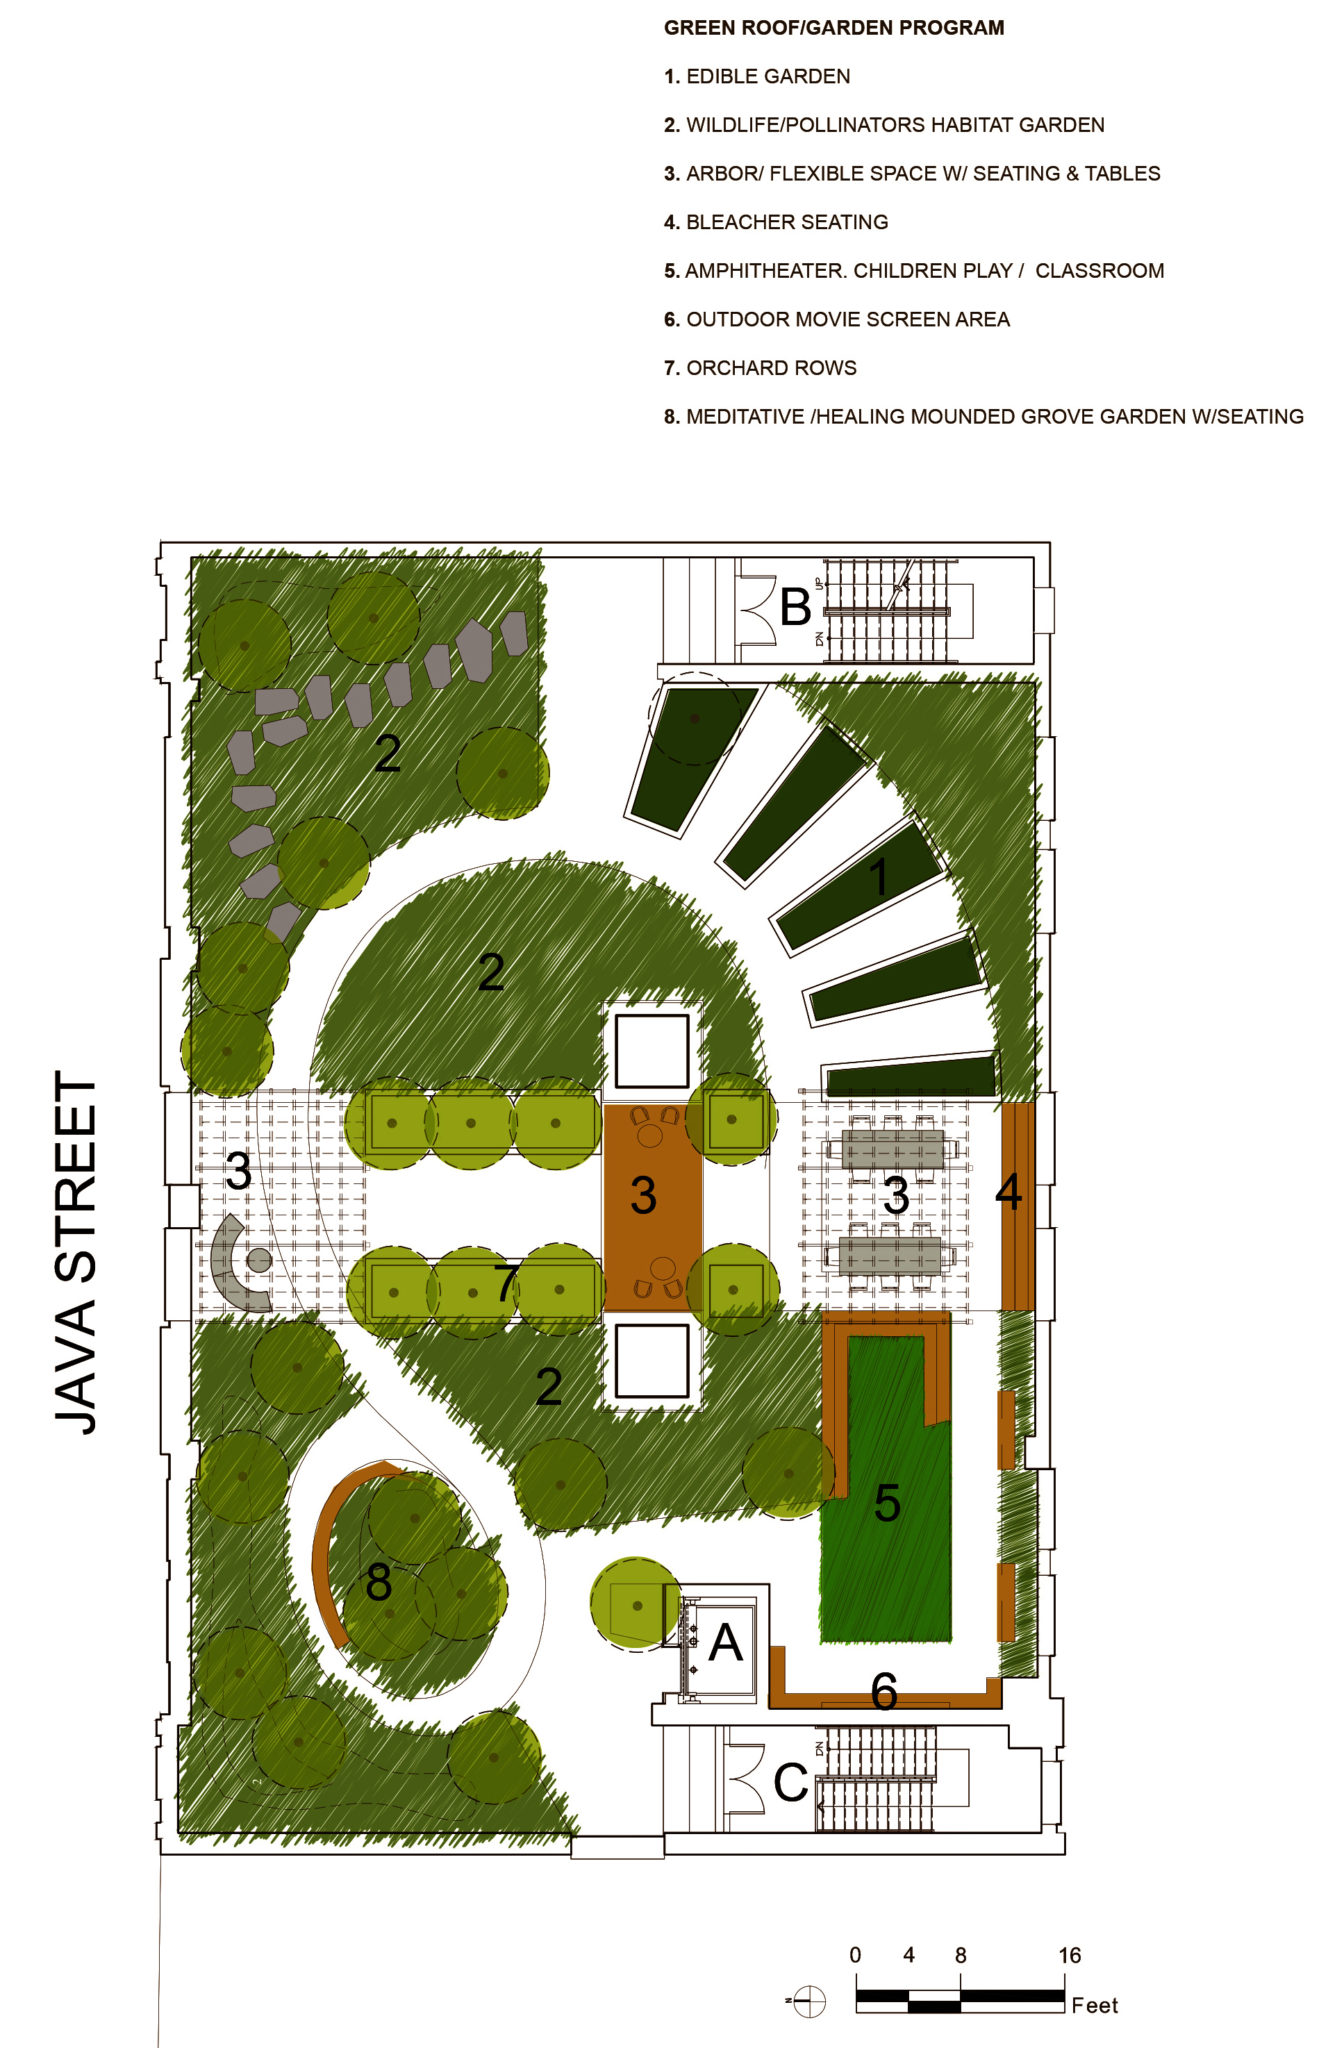 PSC GREENROOF CONCEPTUAL PLAN & REFERENCES-3